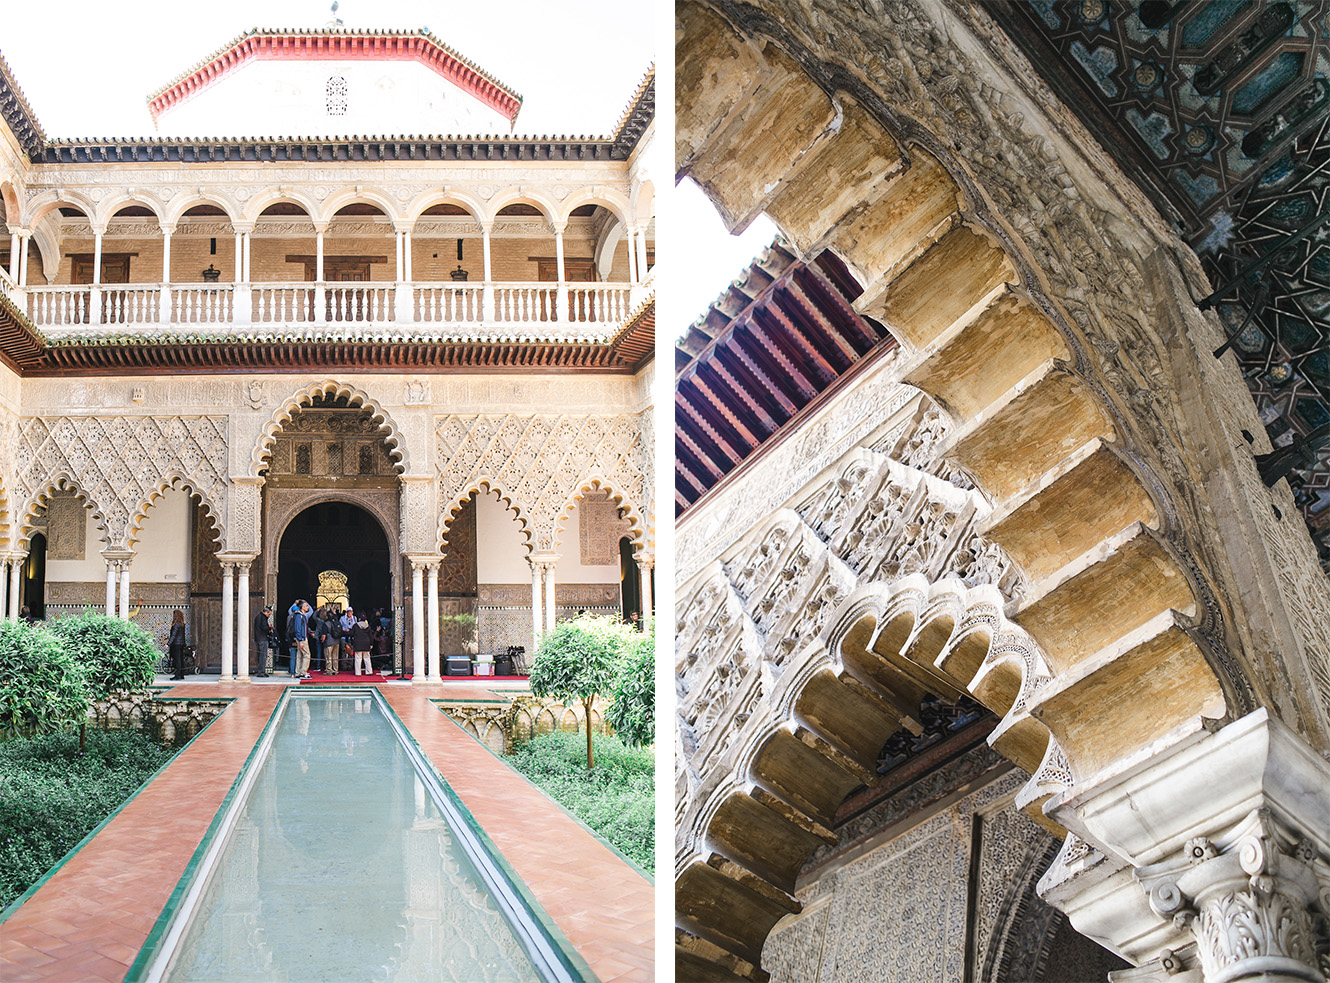 The Real Alcazar! An ancient palace for royals built in the 10th century also Water Gardens of Dorne scene from Game of Thrones.